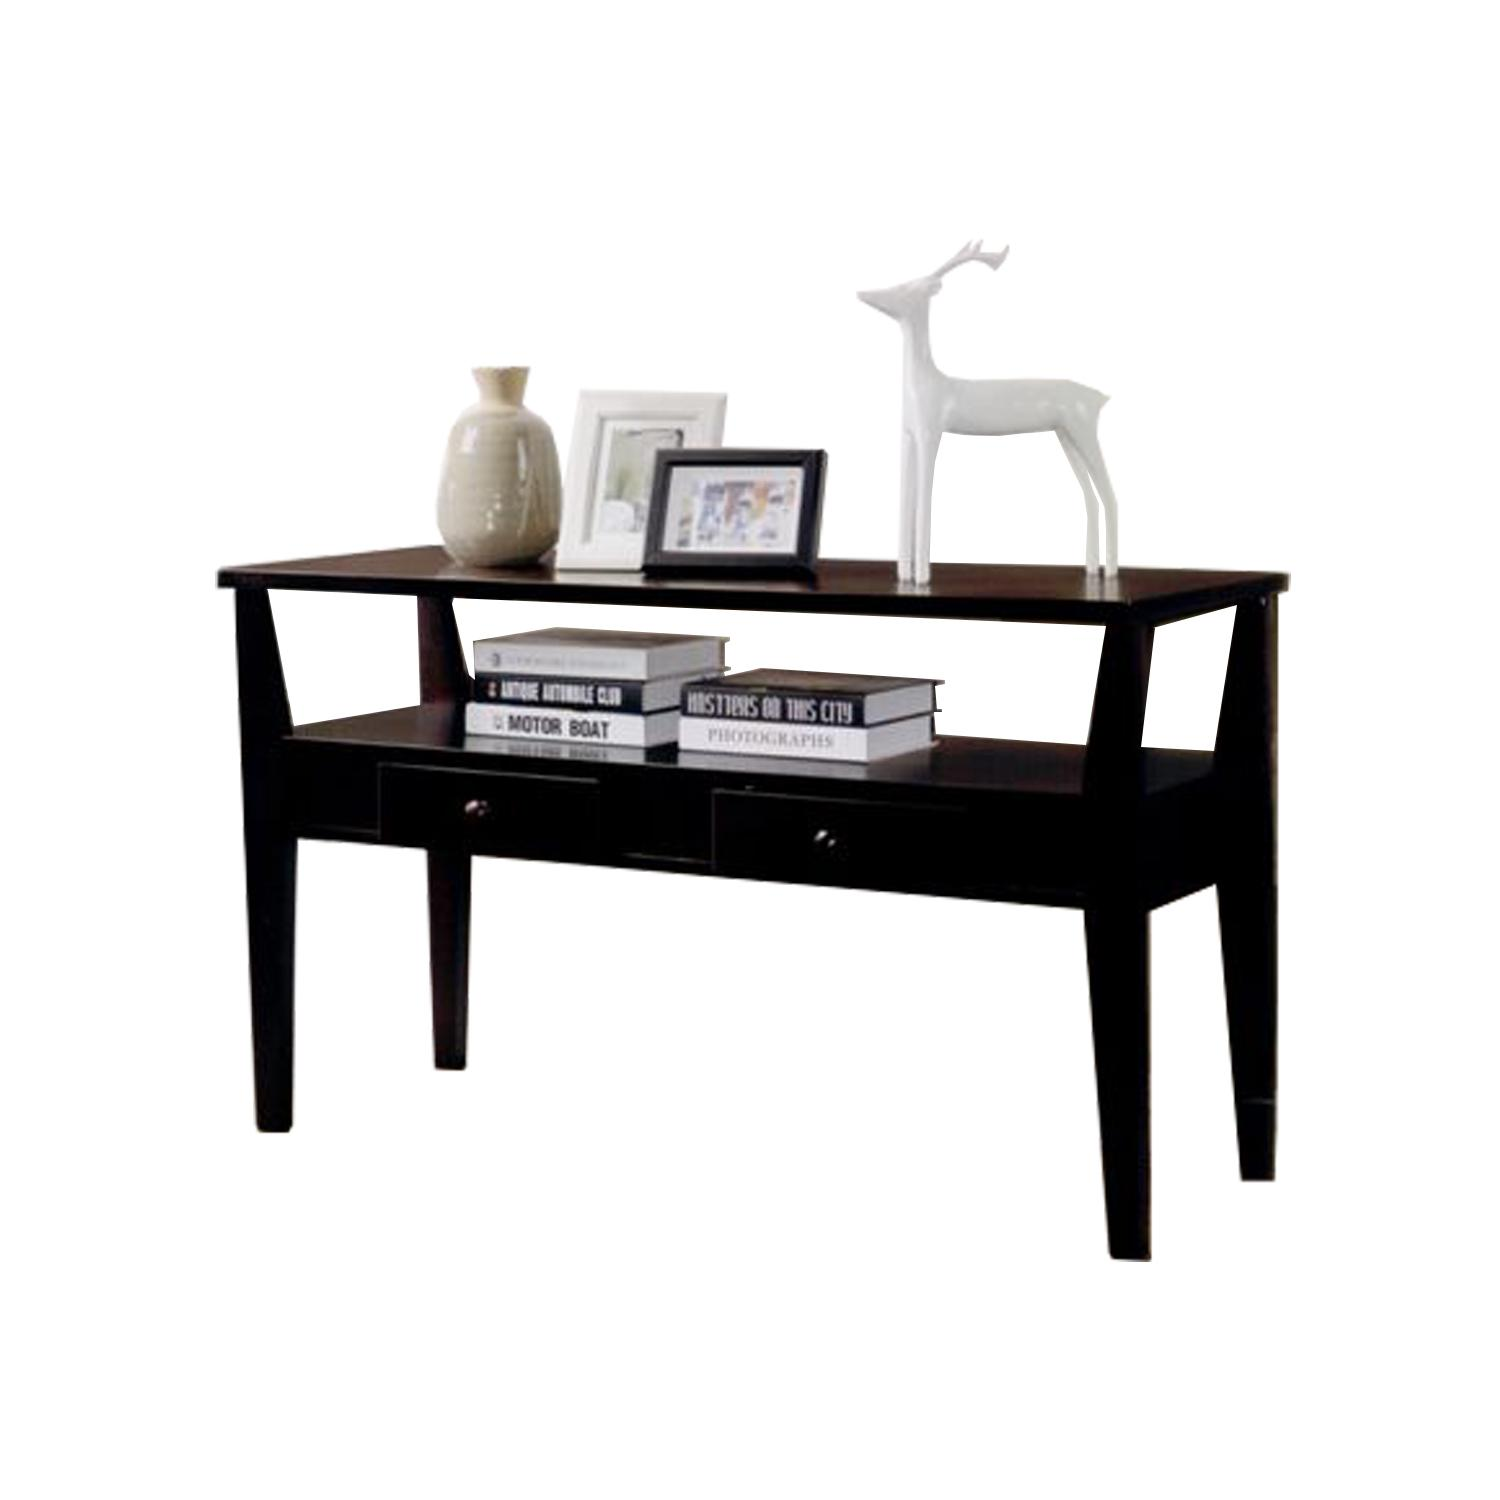 Beowulf Console Table